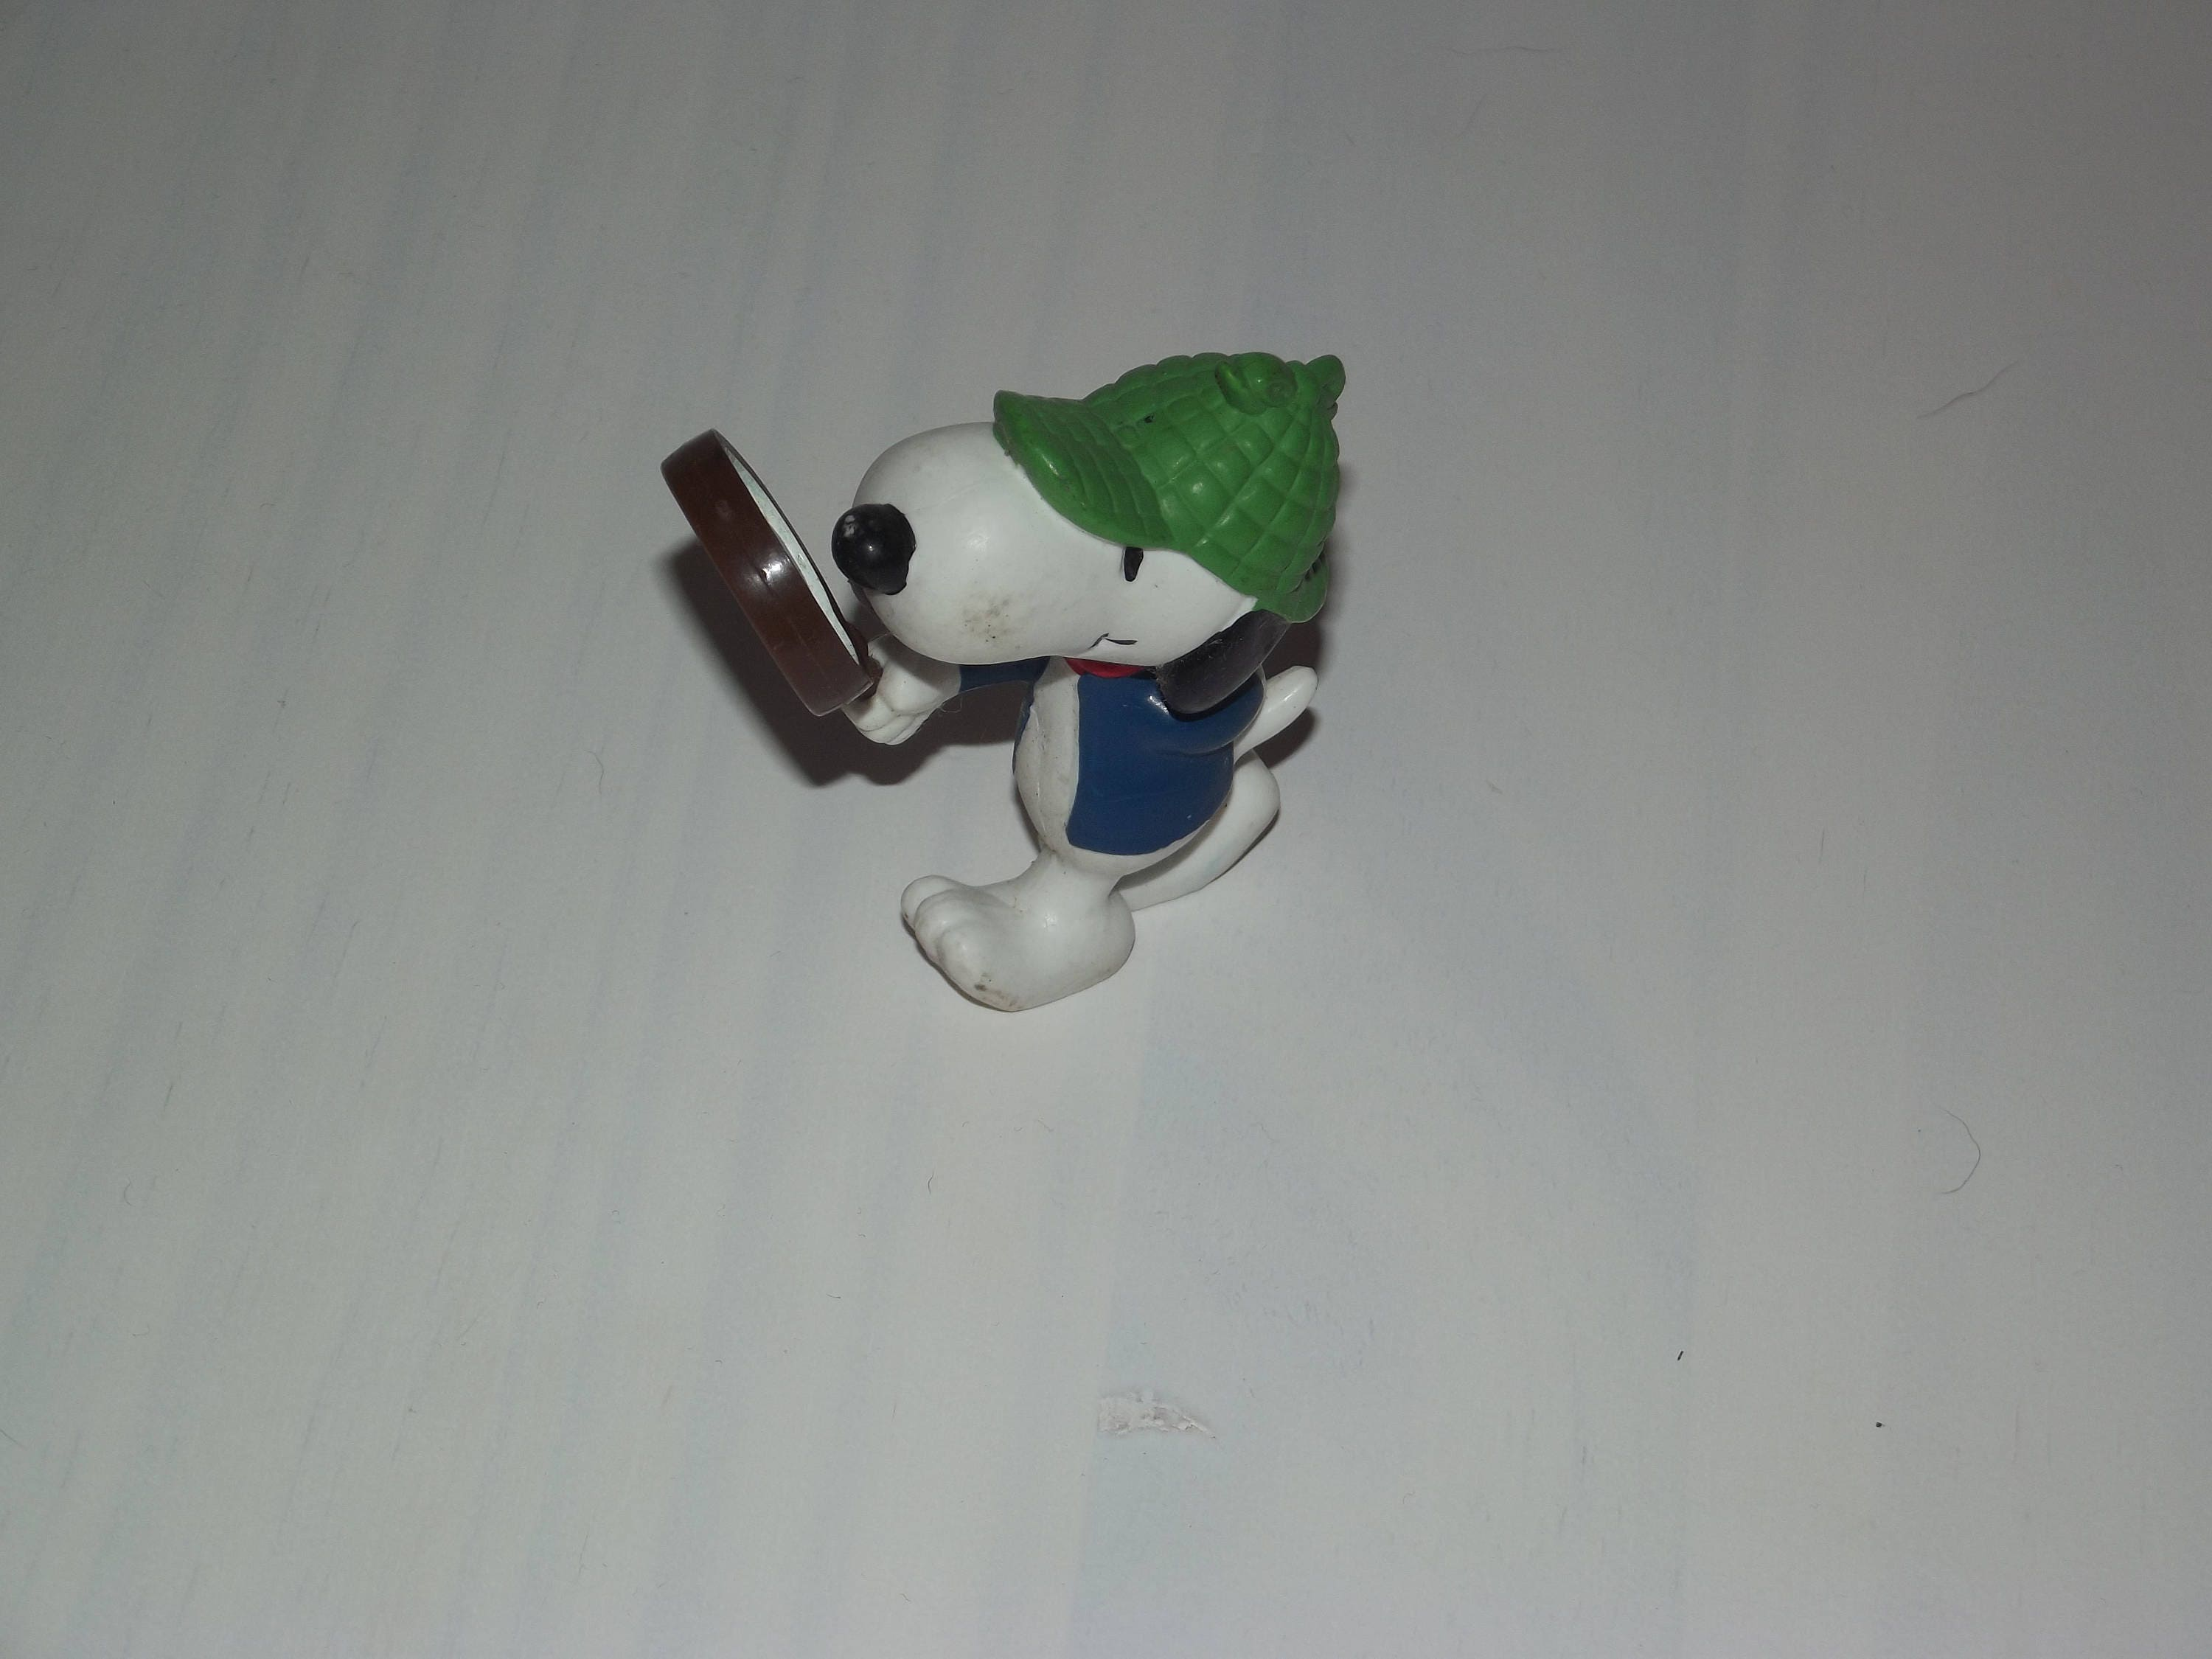 Vintage Snoopy, Vintage United Feature Snoopy, Vintage looking glass Snoopy 195866 rare